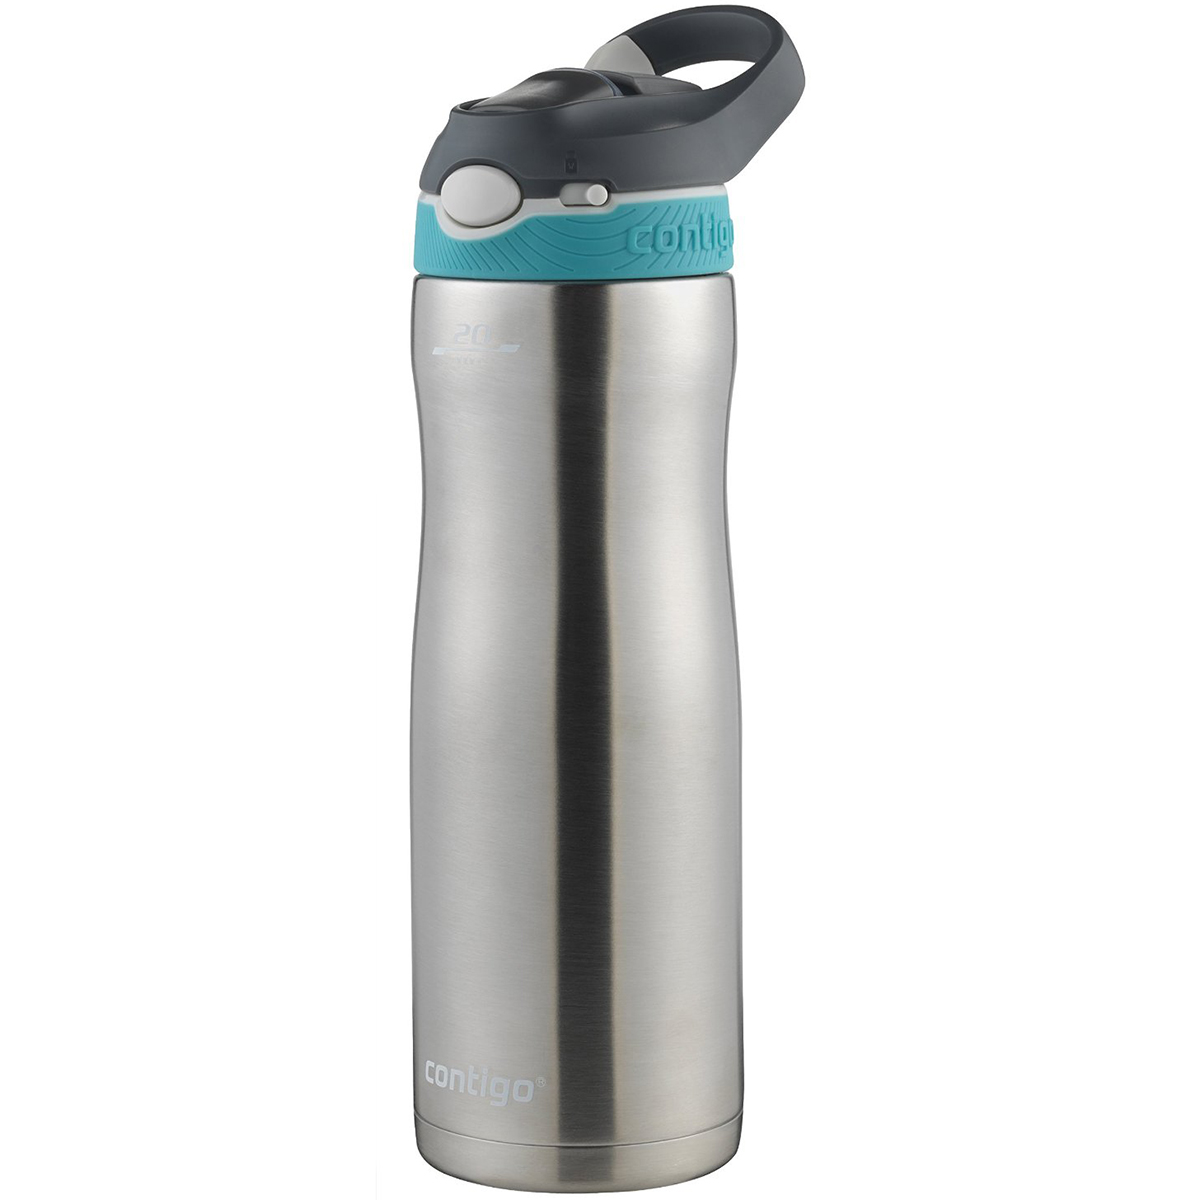 Contigo-20-oz-Ashland-Chill-Autospout-Stainless-Steel-Water-Bottle